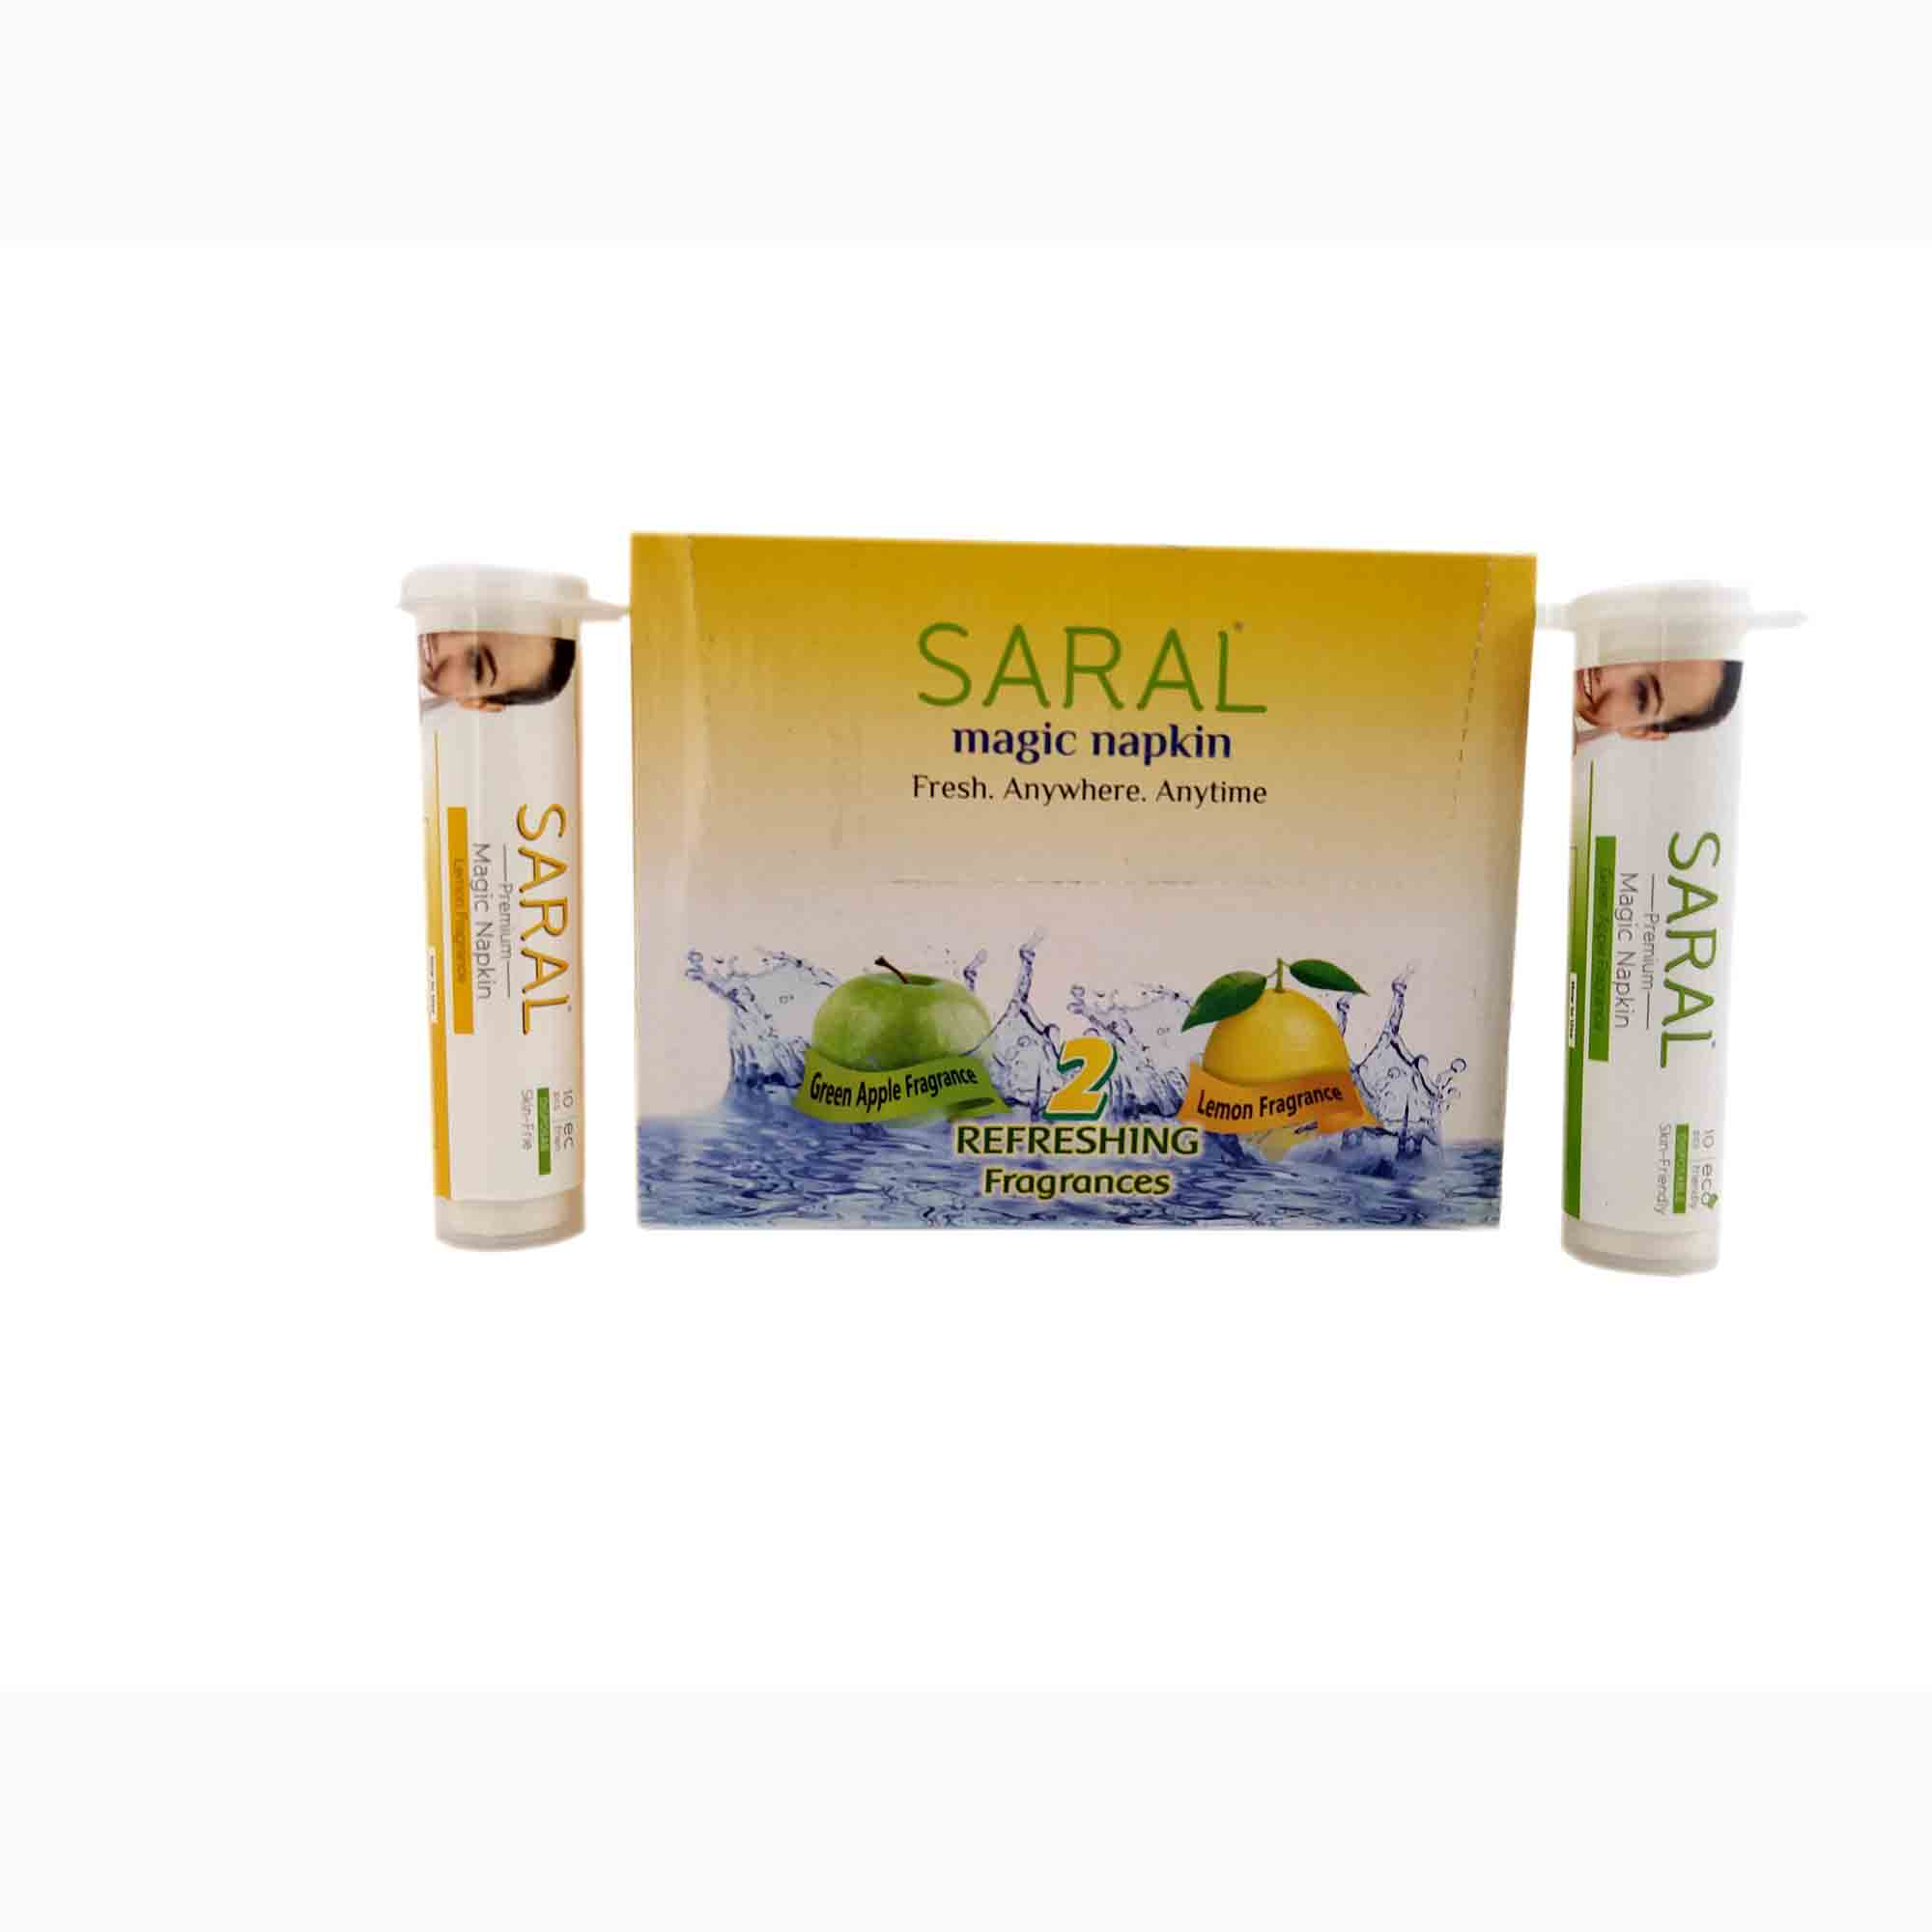 Saral Magic Napkin 12 pcs Tube